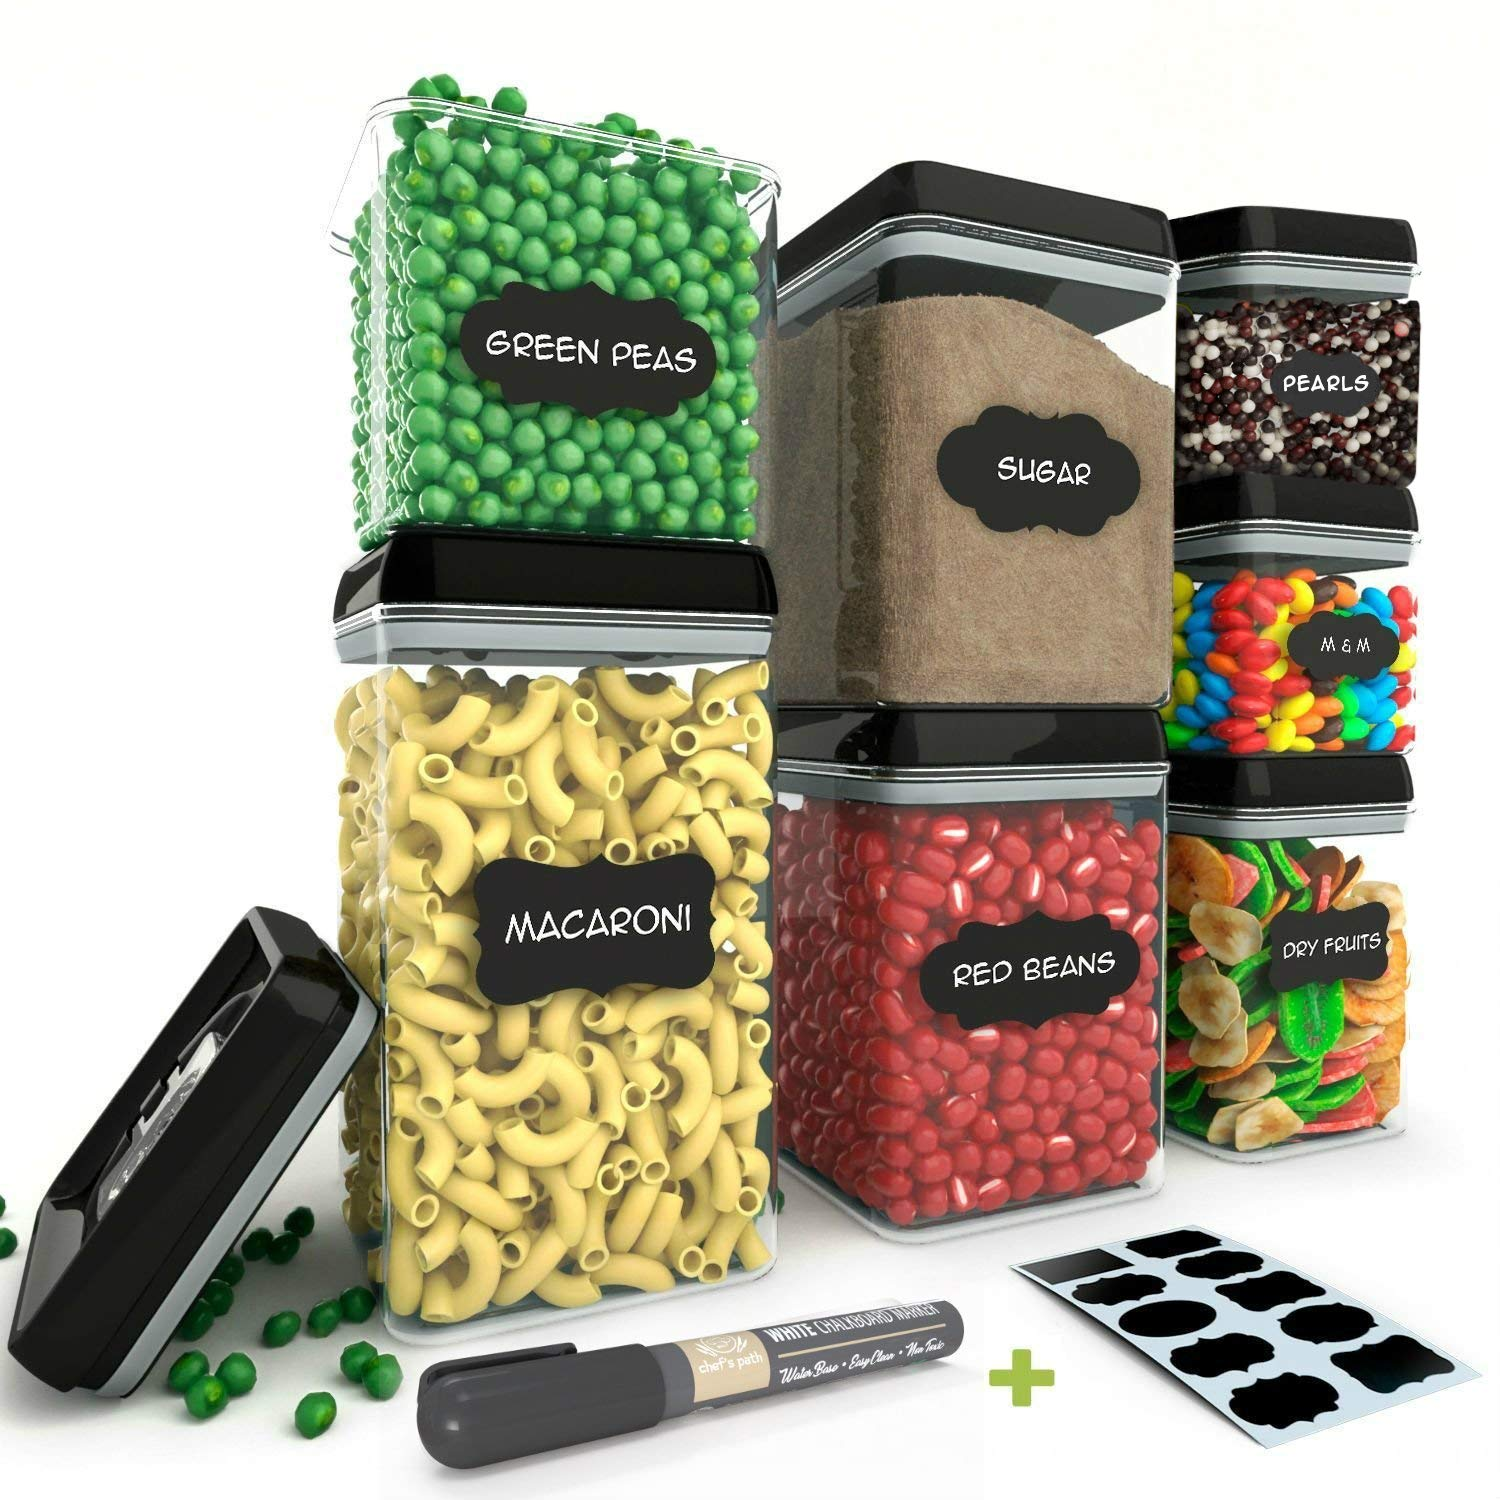 Chef's Path Airtight Food Storage Container Set - 7 PC Set - 10 FREE Chalkboard Labels & Marker - BEST VALUE Kitchen & Pantry Containers - BPA Free - Clear Durable Plastic with Black Lids Chef's Path CP-008